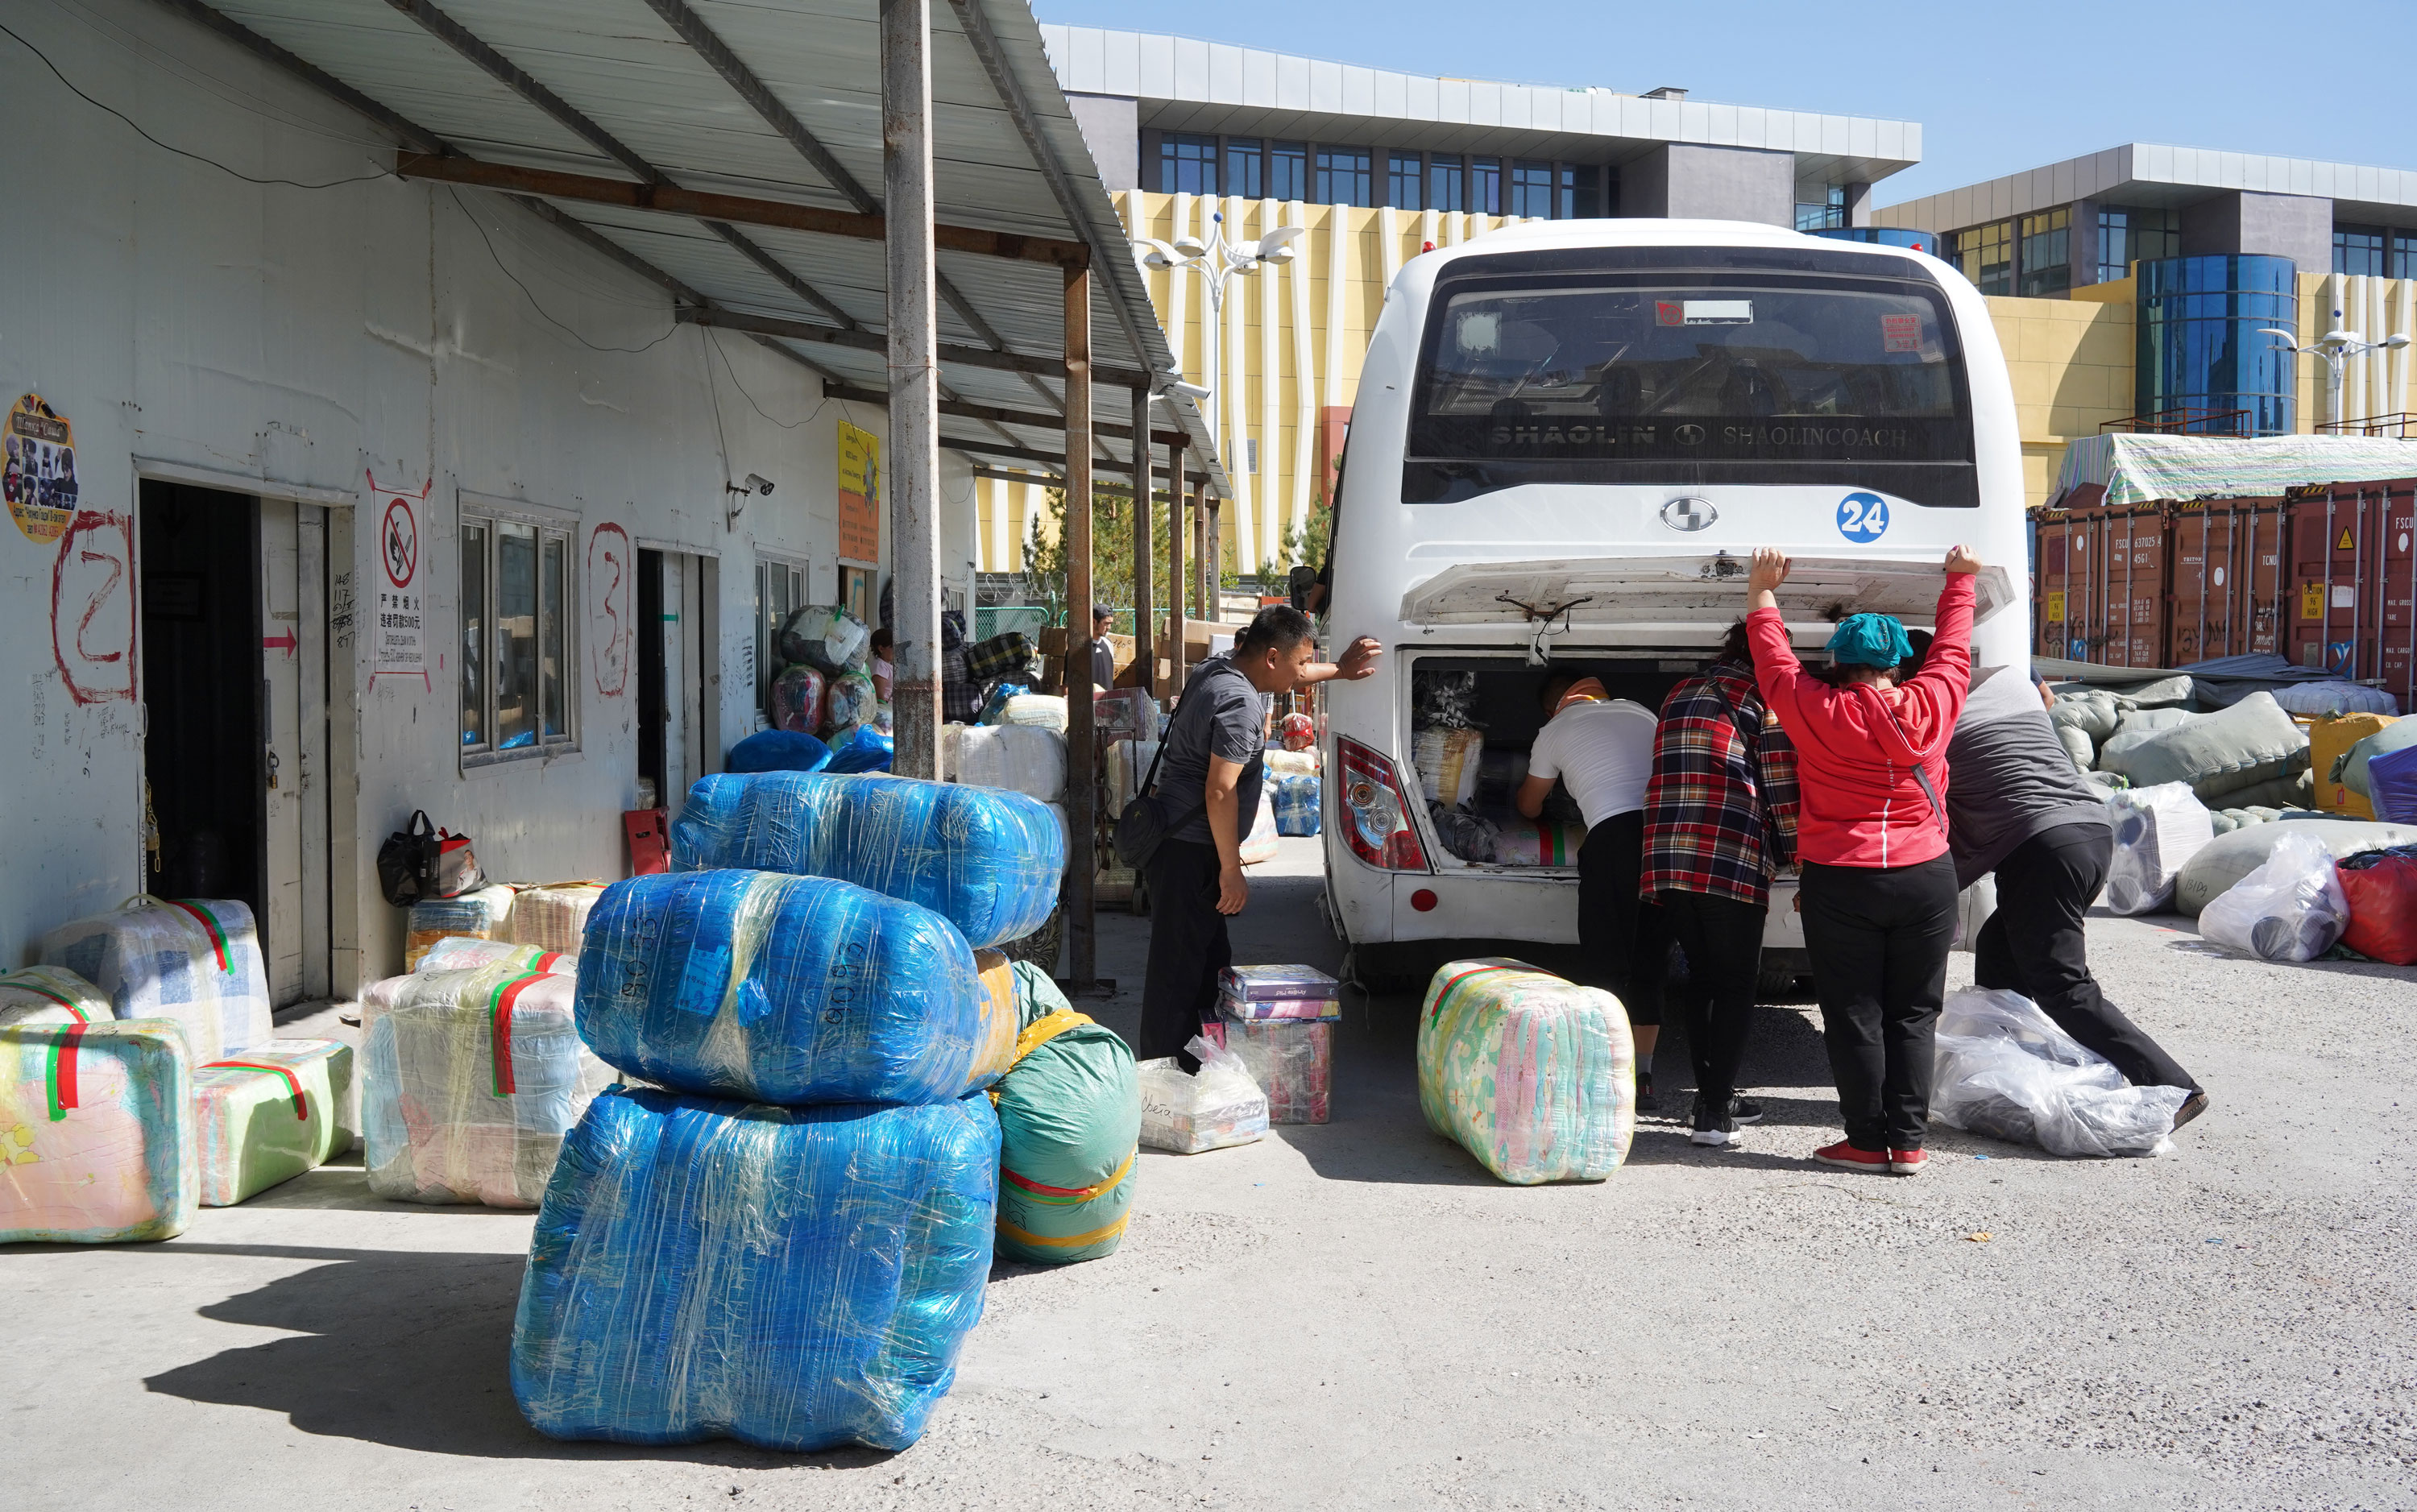 The shoppers stuff their purchases onto the shuttle bus, preparing to leave Khorgos ICBC.